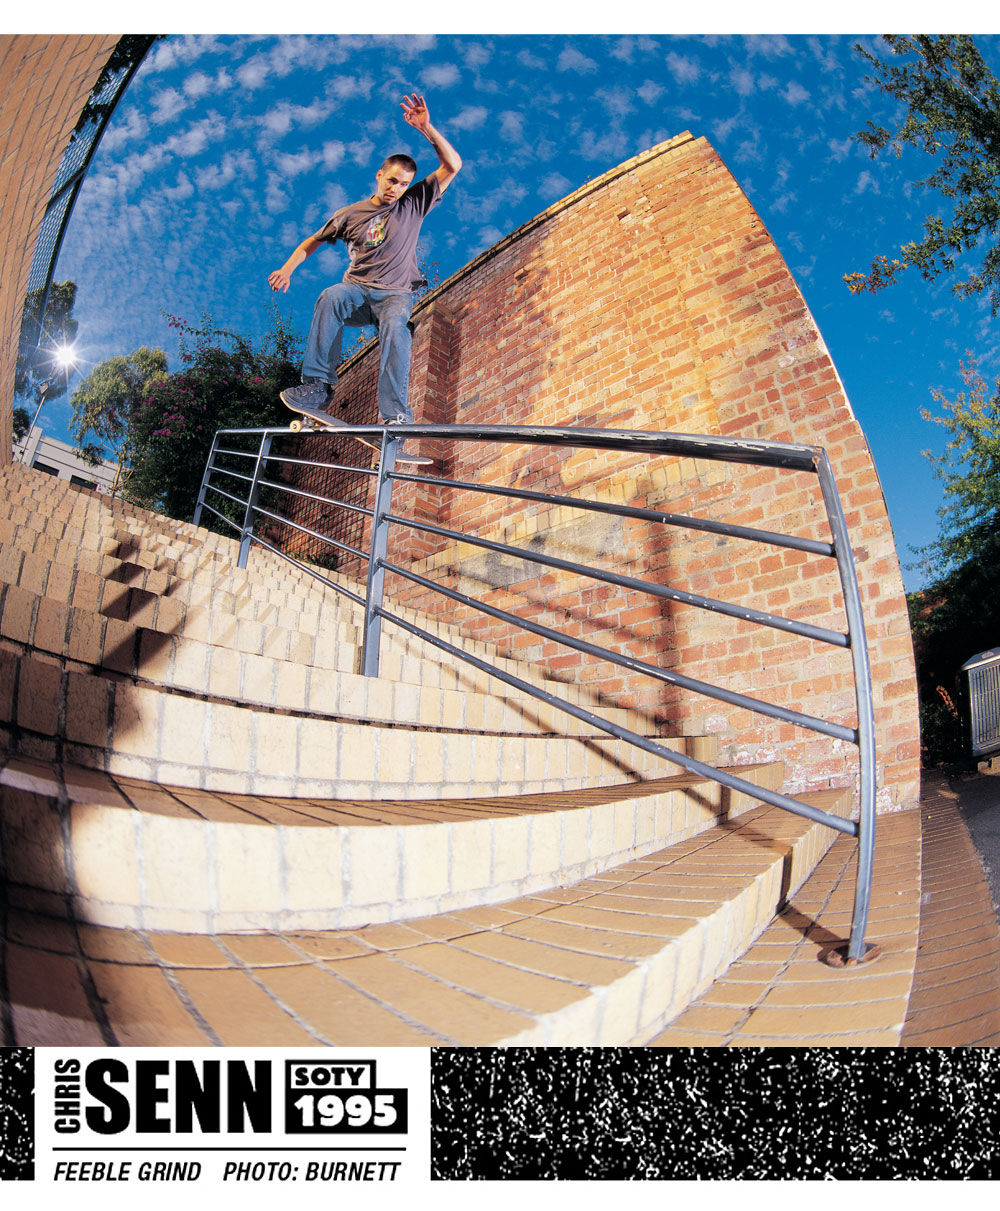 Chris Senn SOTY 1995